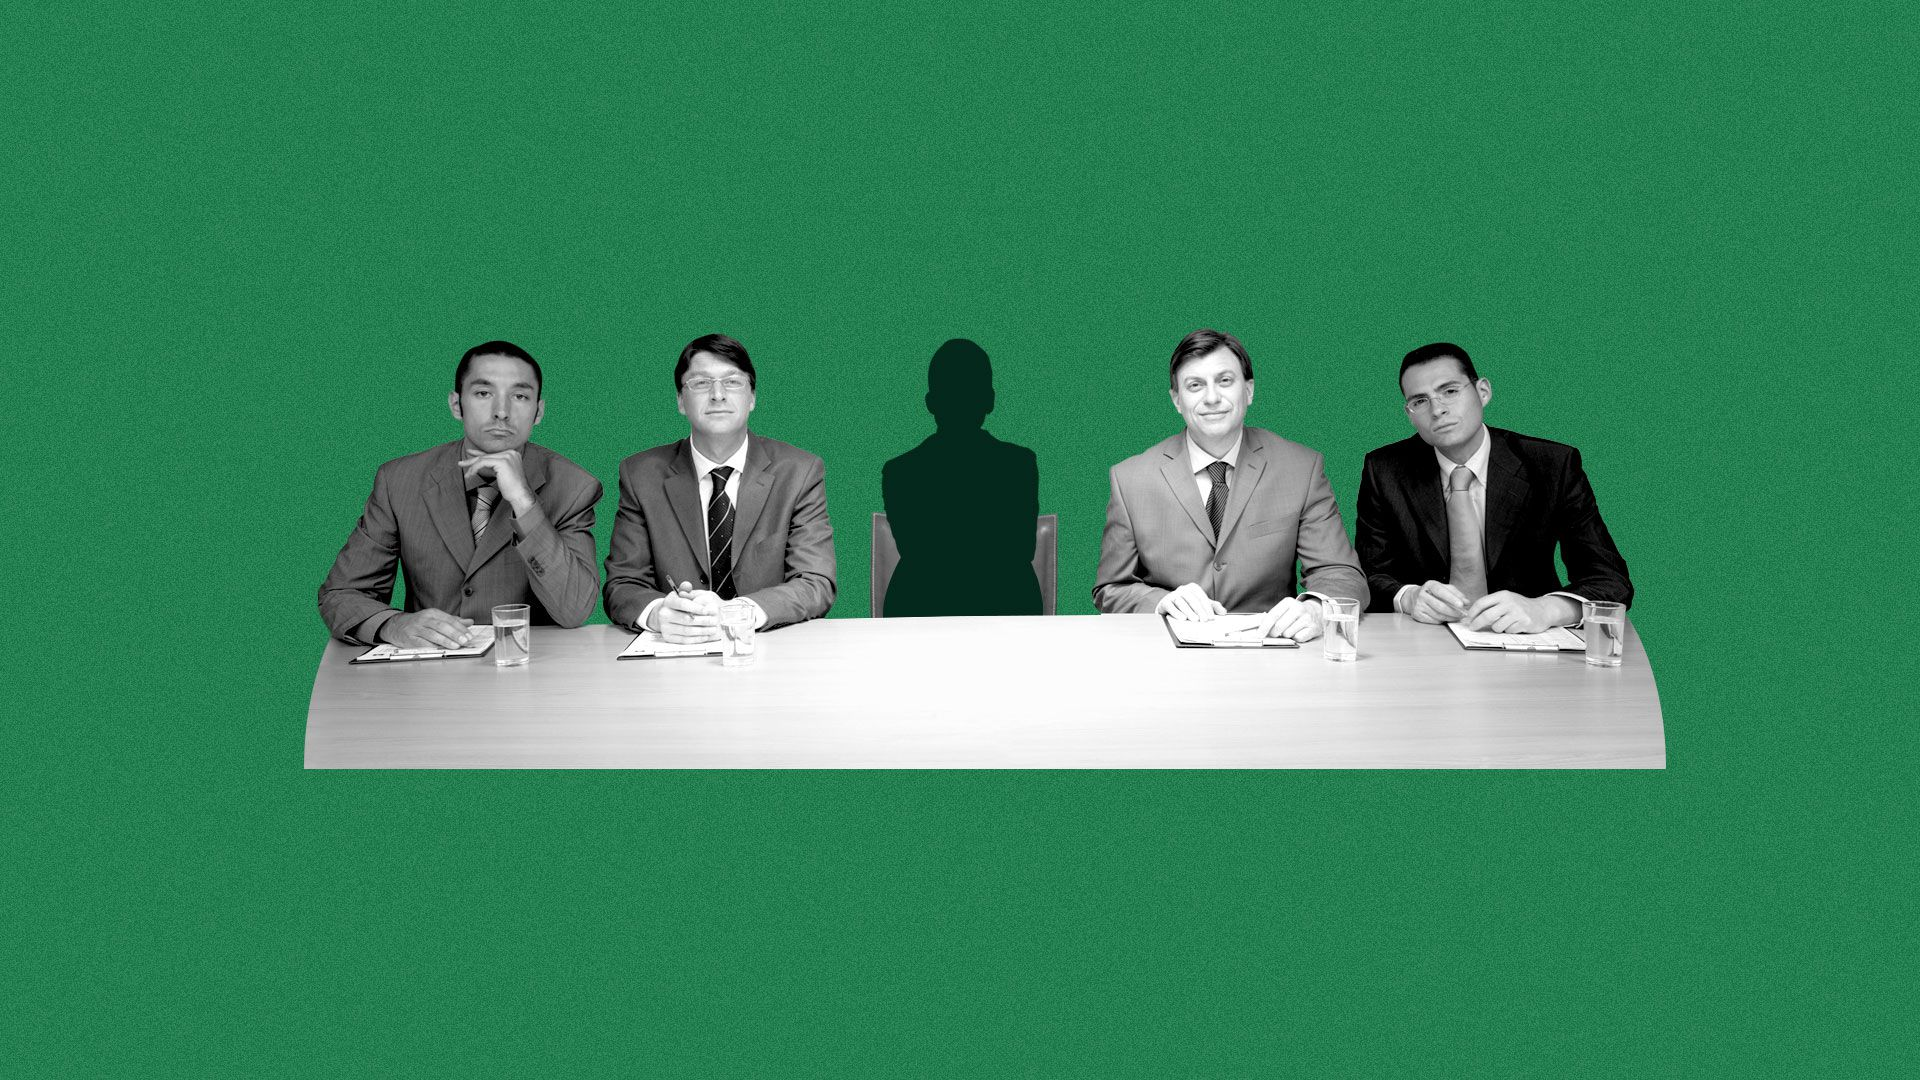 Illustration of conference table with men. In the middle is a silhouette of a woman